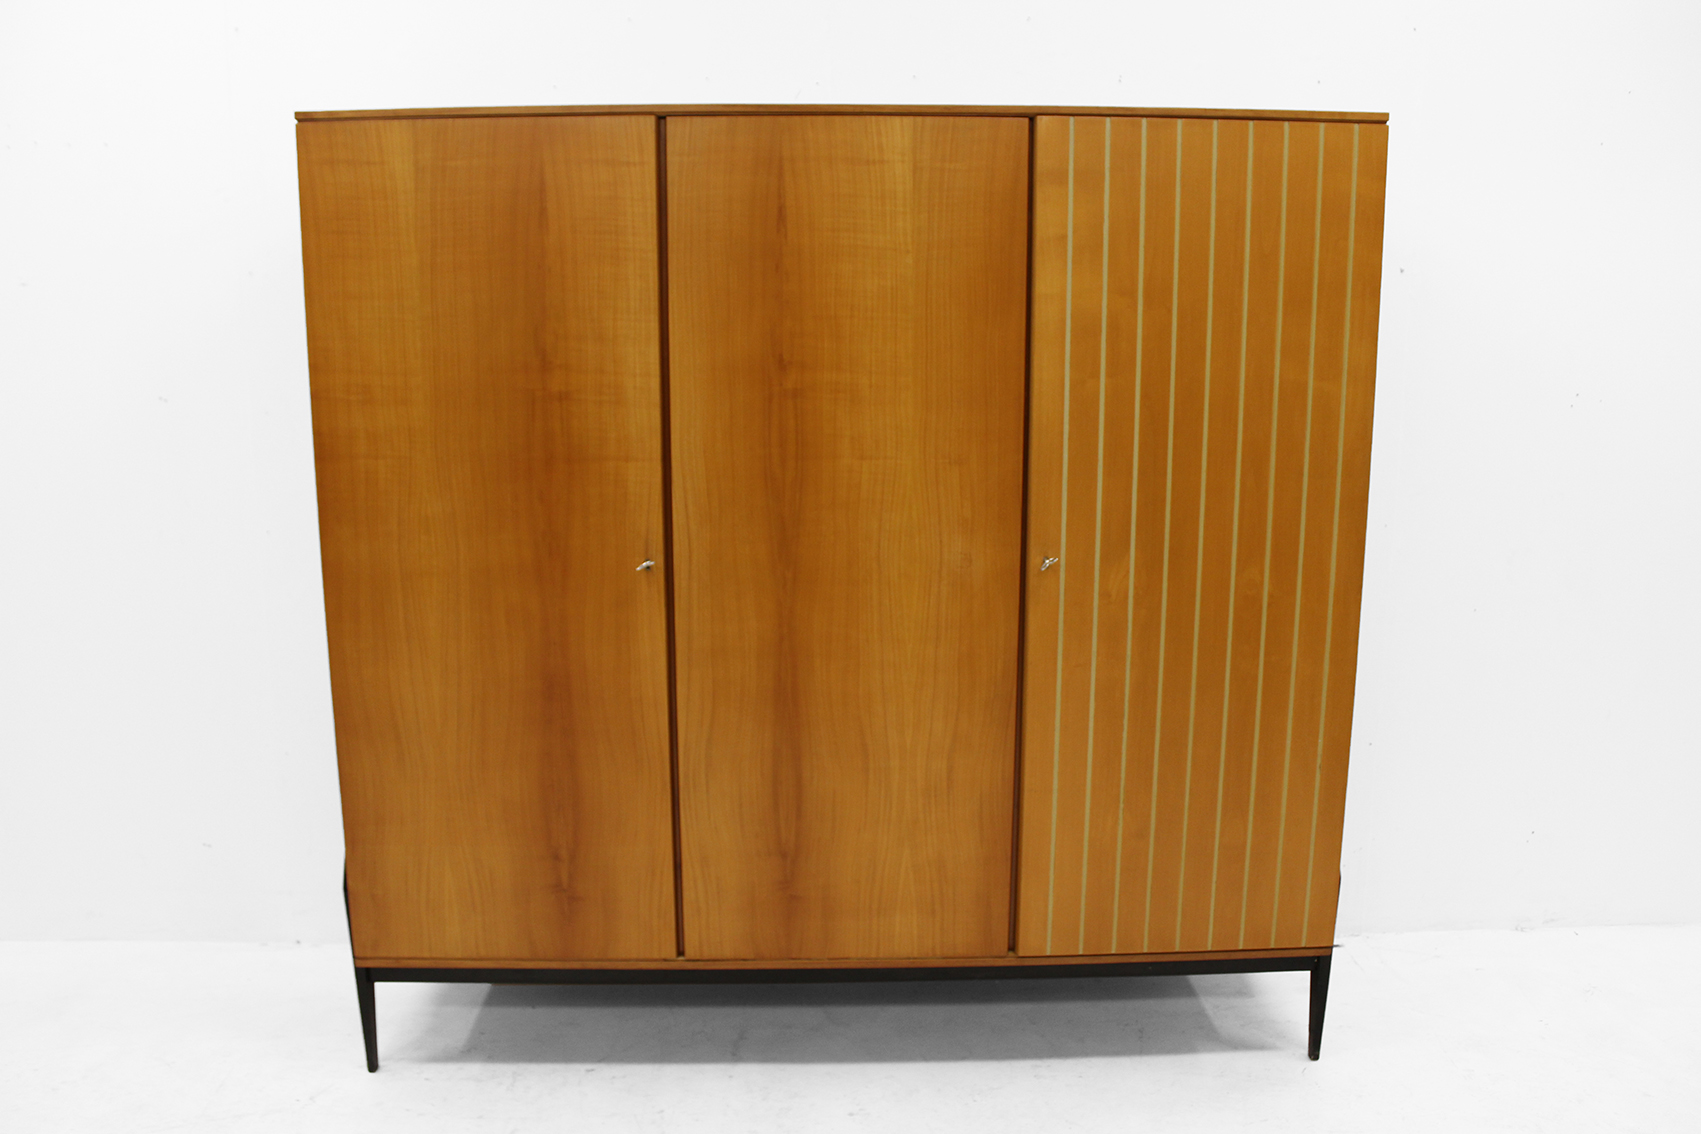 Wardrobe in cherry-wood late fifties